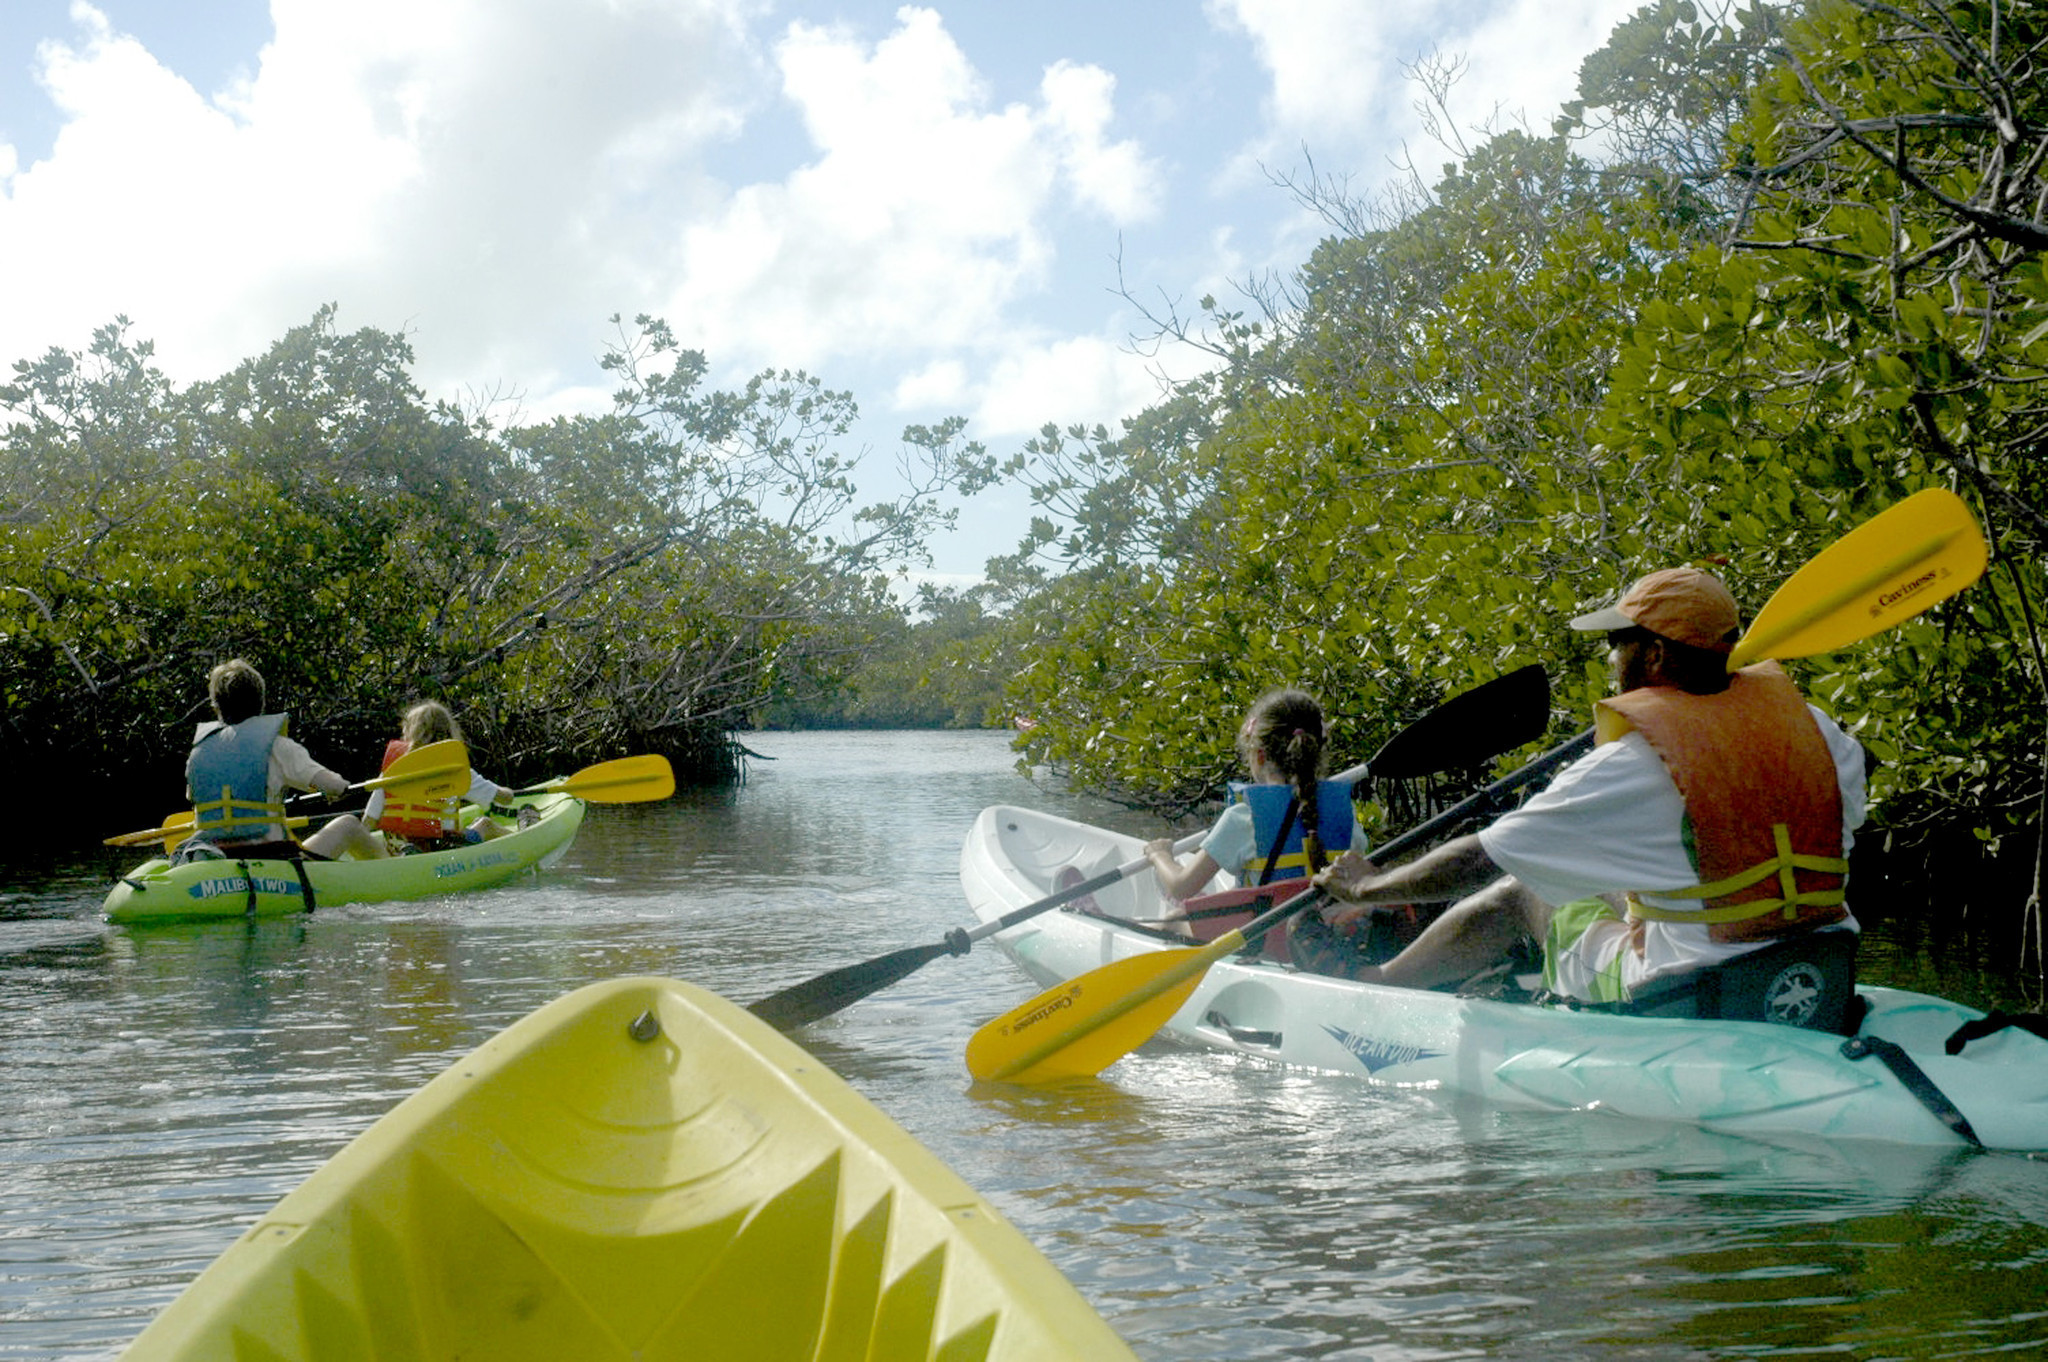 The Keller family of Washington, D.C., explores the mangrove creeks at John Pennekamp Coral Reef State Park in Key Largo, Florida.